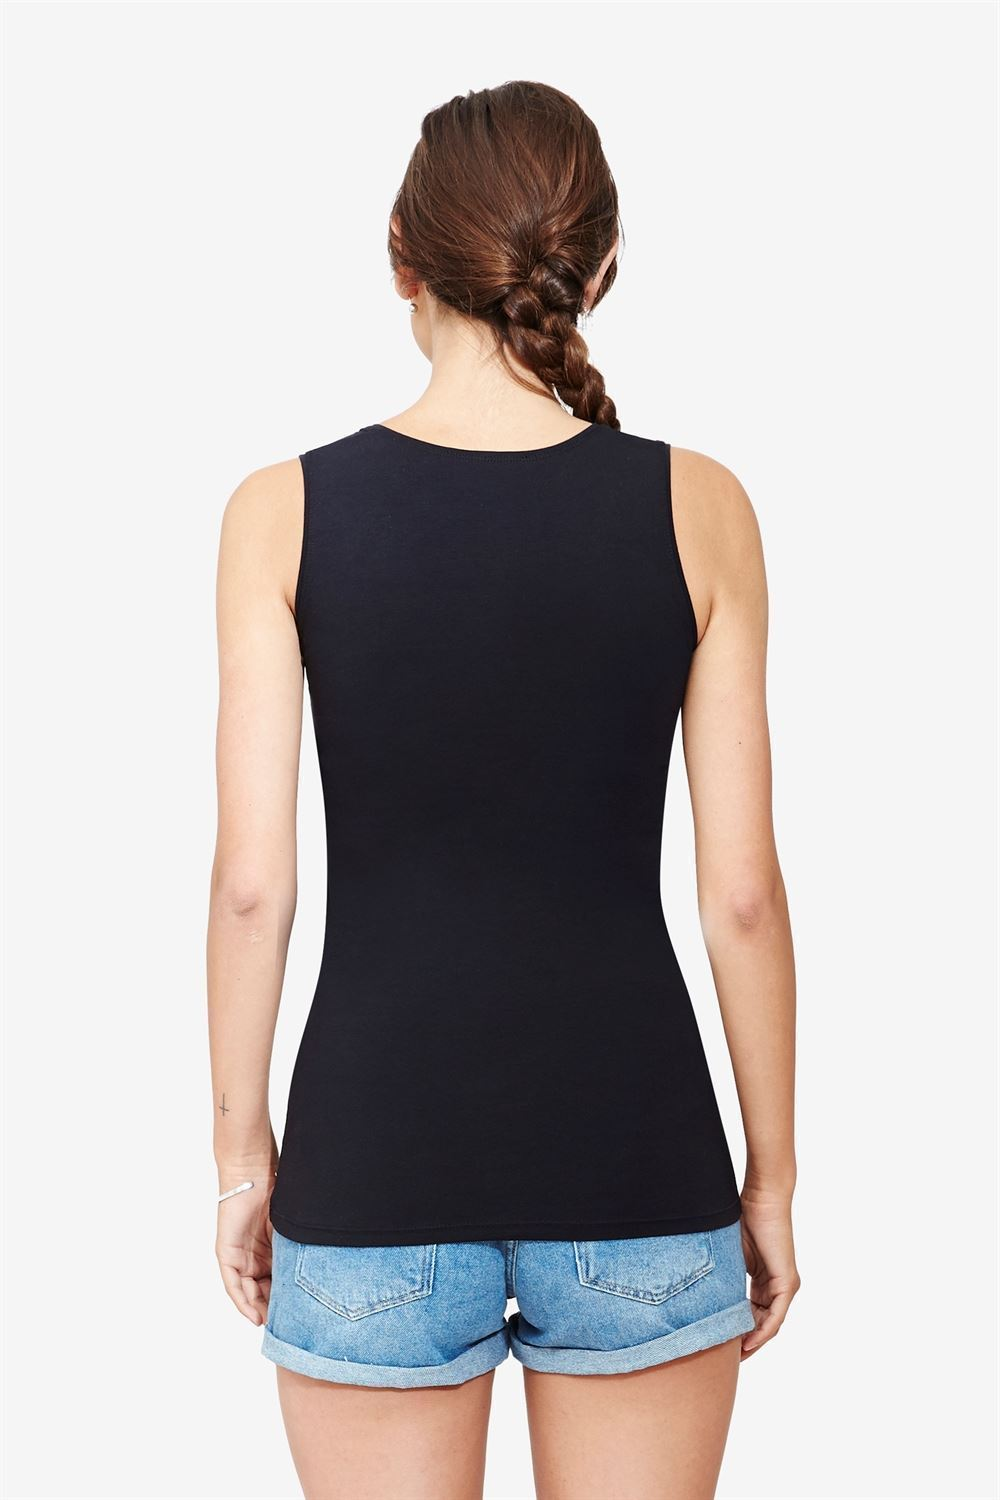 Black nursing top - classic and simple design in organic cotton - Seen from behind